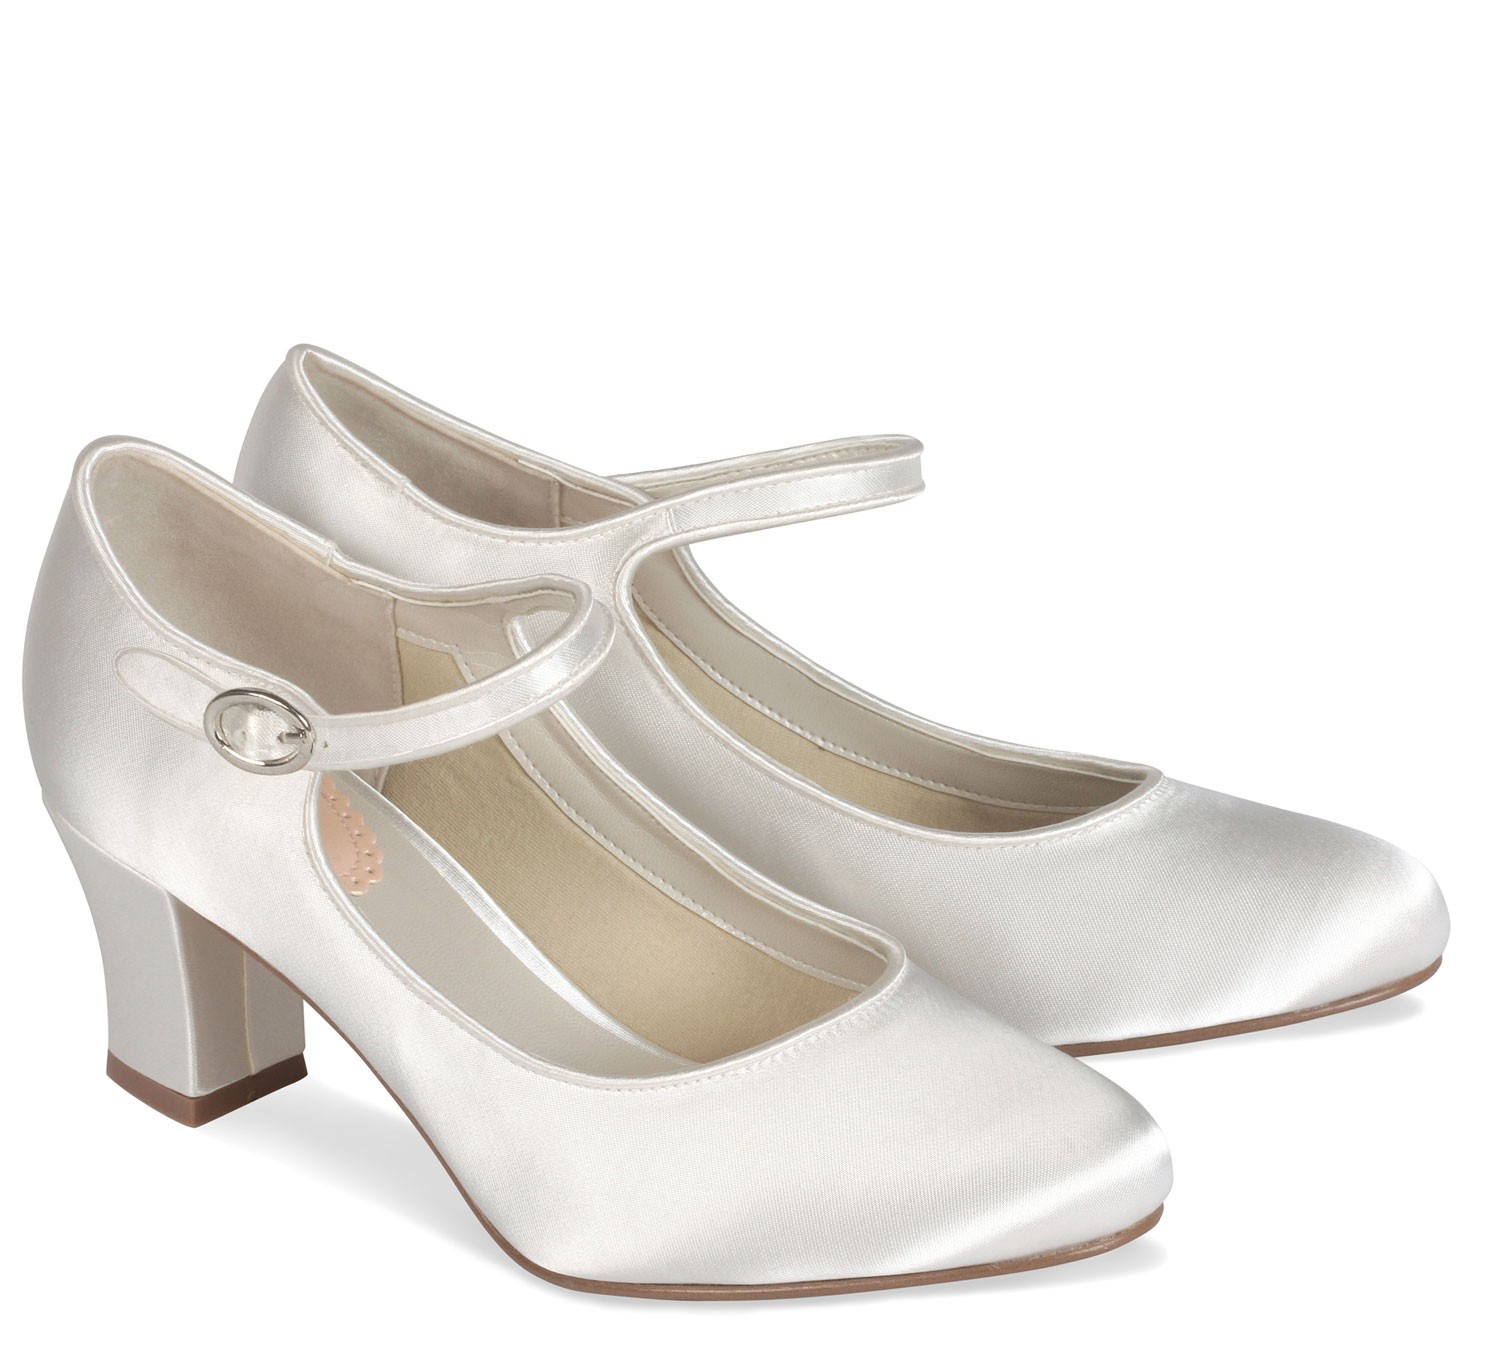 Vintage Ivory Shoes Uk